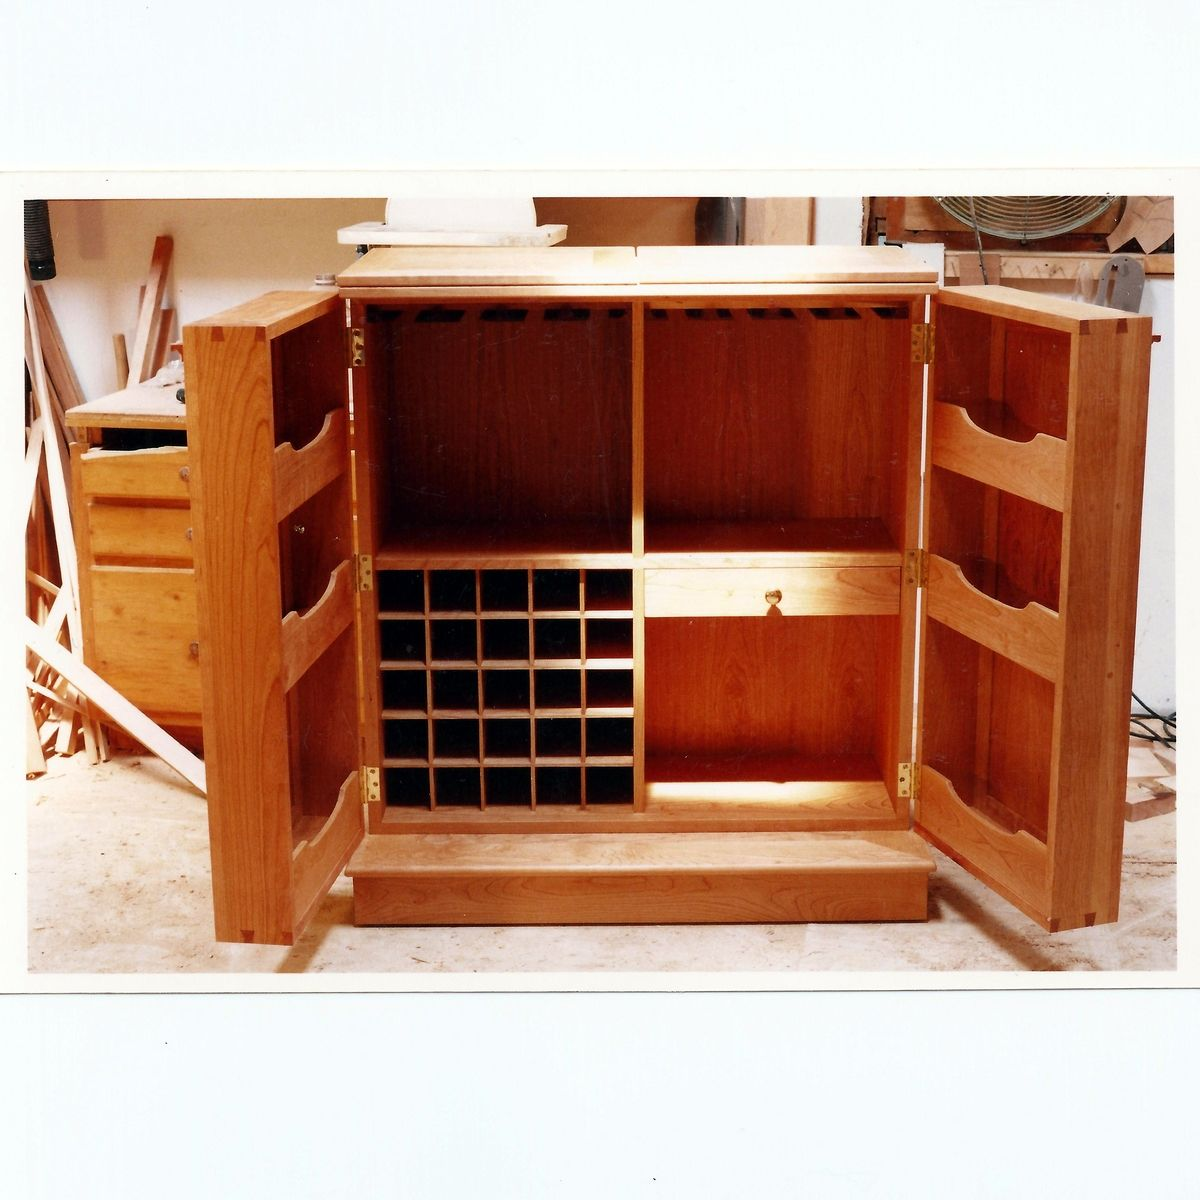 Inspiring Second Hand Cabinets 4 Dark Cherry Kitchen: Hand Made Fold Out Liquor Cabinet By Sawyer Cabinetry